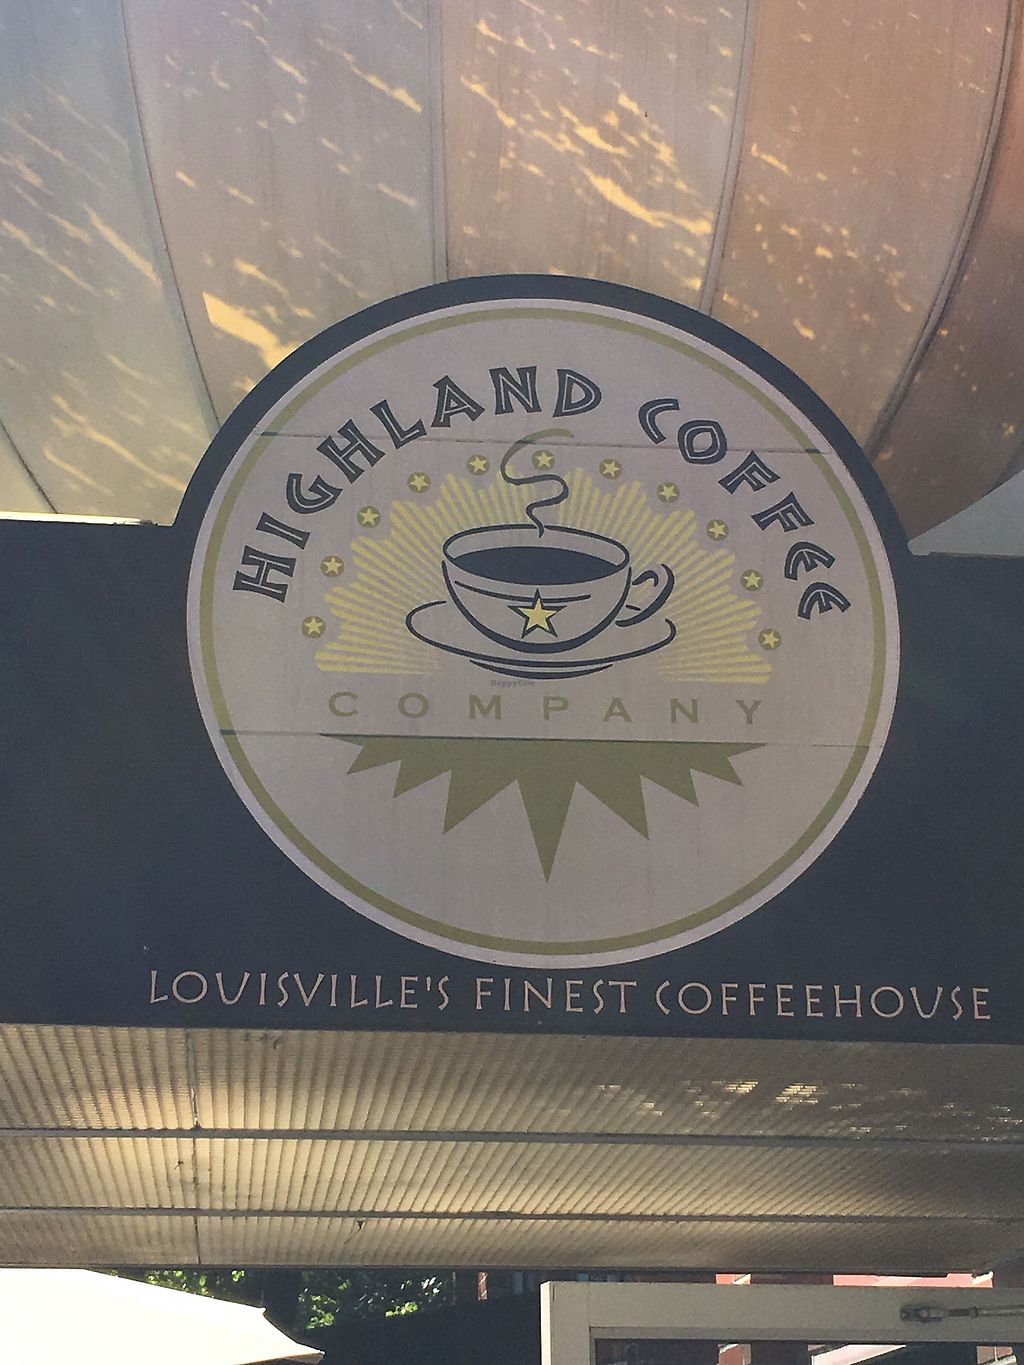 """Photo of Highland Coffee Company  by <a href=""""/members/profile/Jonaweinhofen"""">Jonaweinhofen</a> <br/>Highland coffee (behind urban outfitters) <br/> September 30, 2017  - <a href='/contact/abuse/image/85623/310206'>Report</a>"""